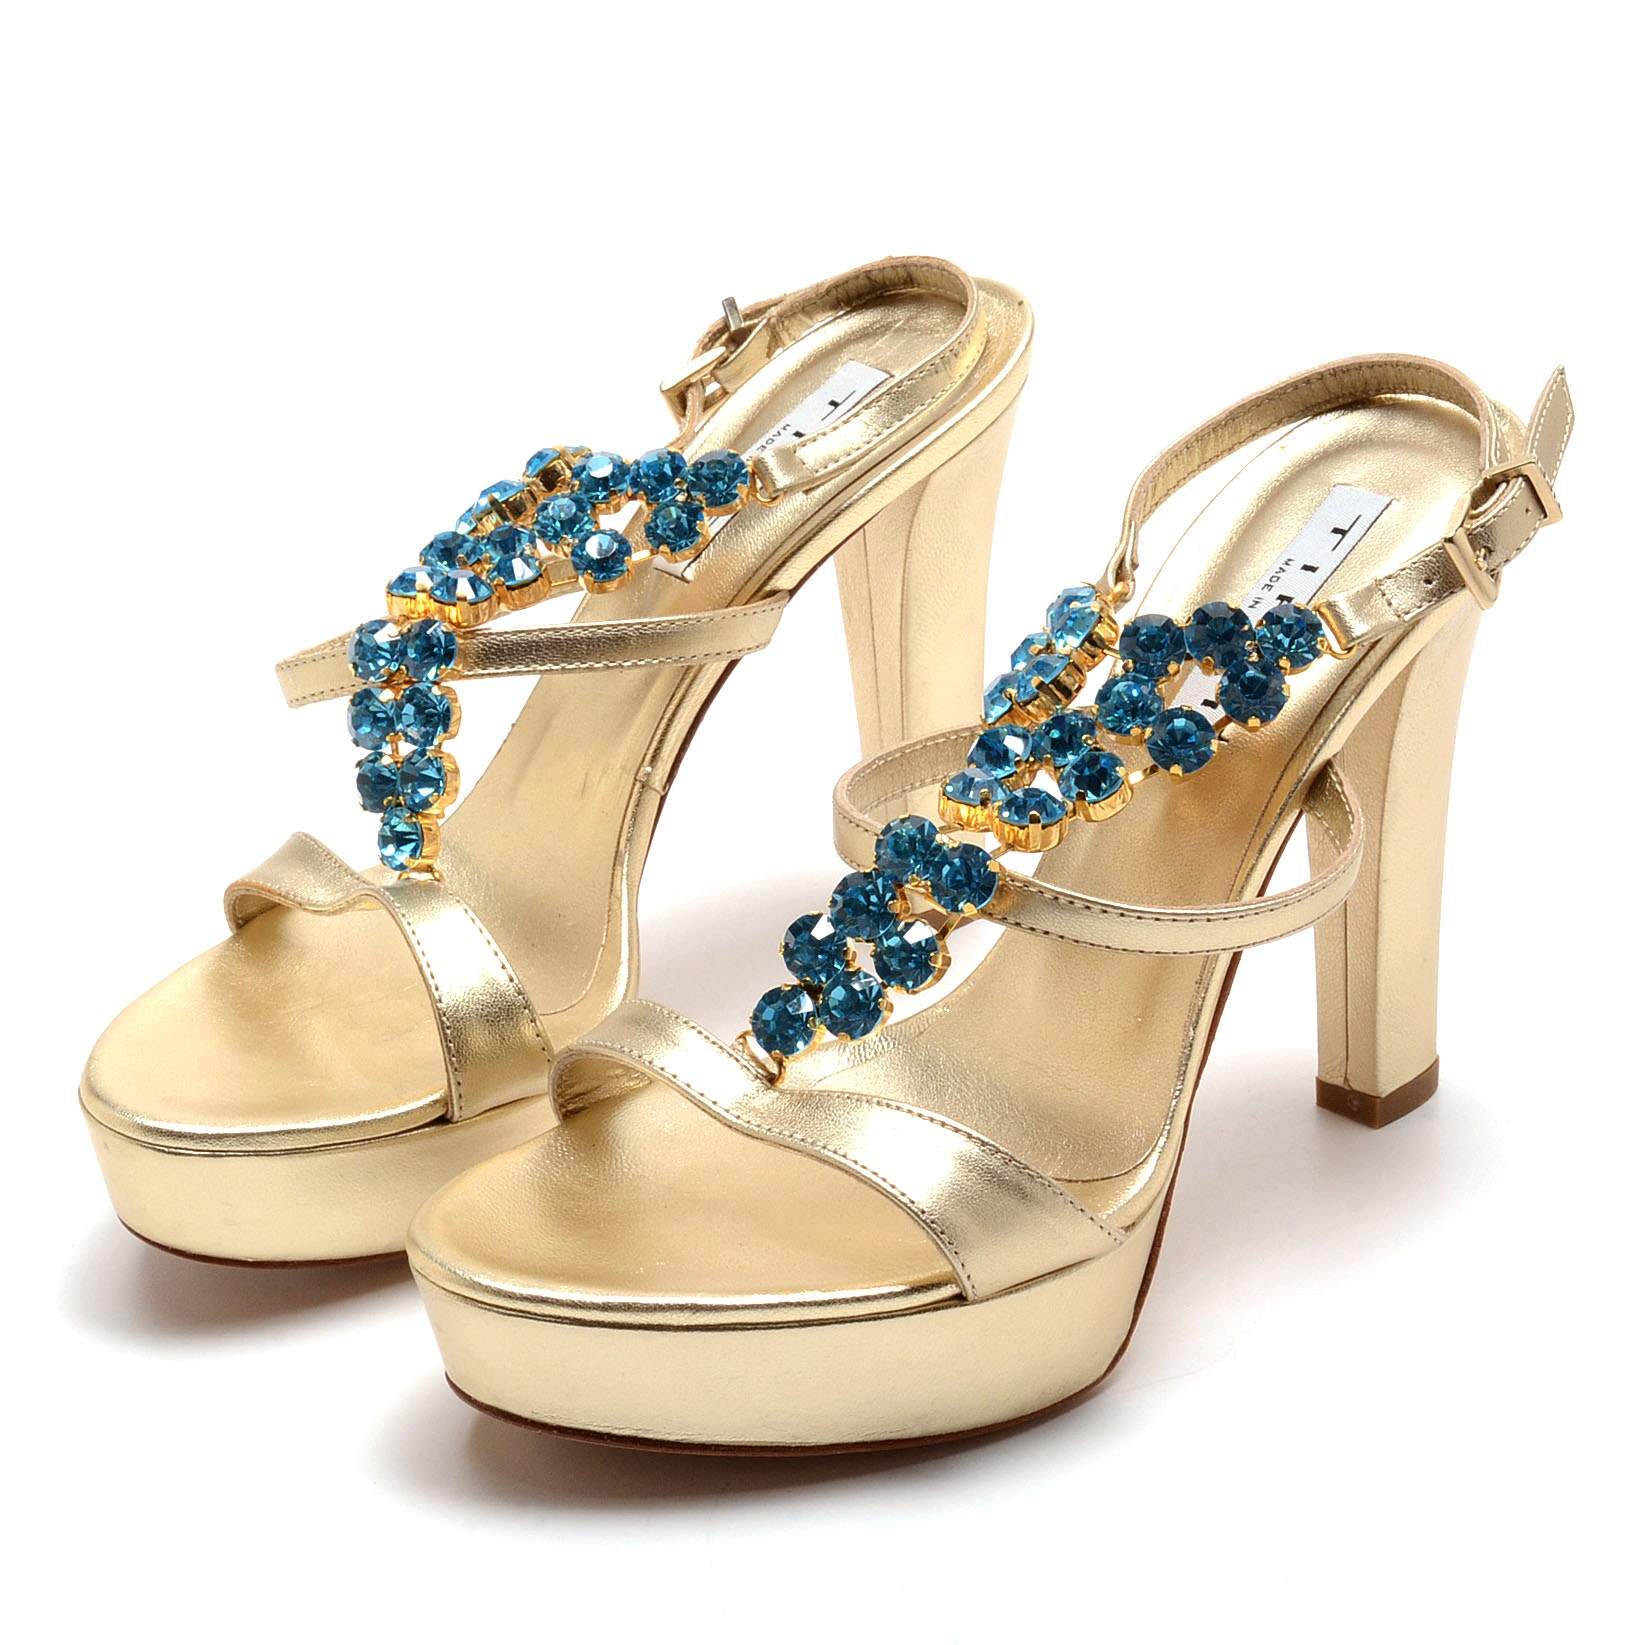 Tiffi Gold Metallic Leather Platform Sling Back Dress Sandals Embellished with Topaz Blue Crystal Rhinestones